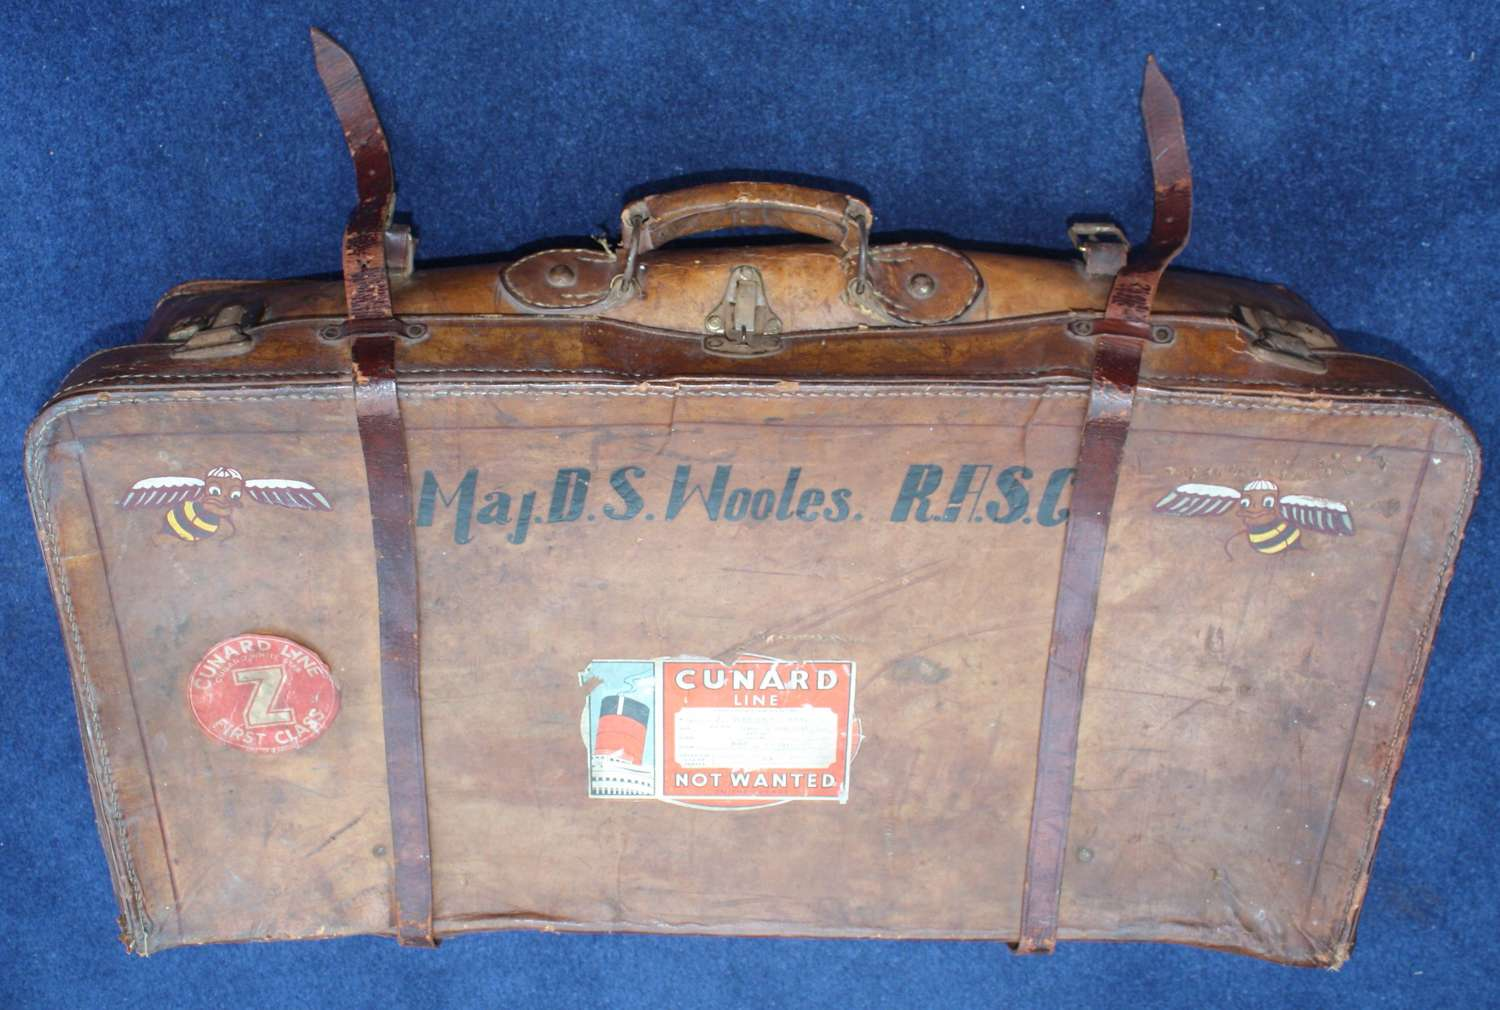 WW2 Leather Suitcase 6th Airborne Division British Army Officer's